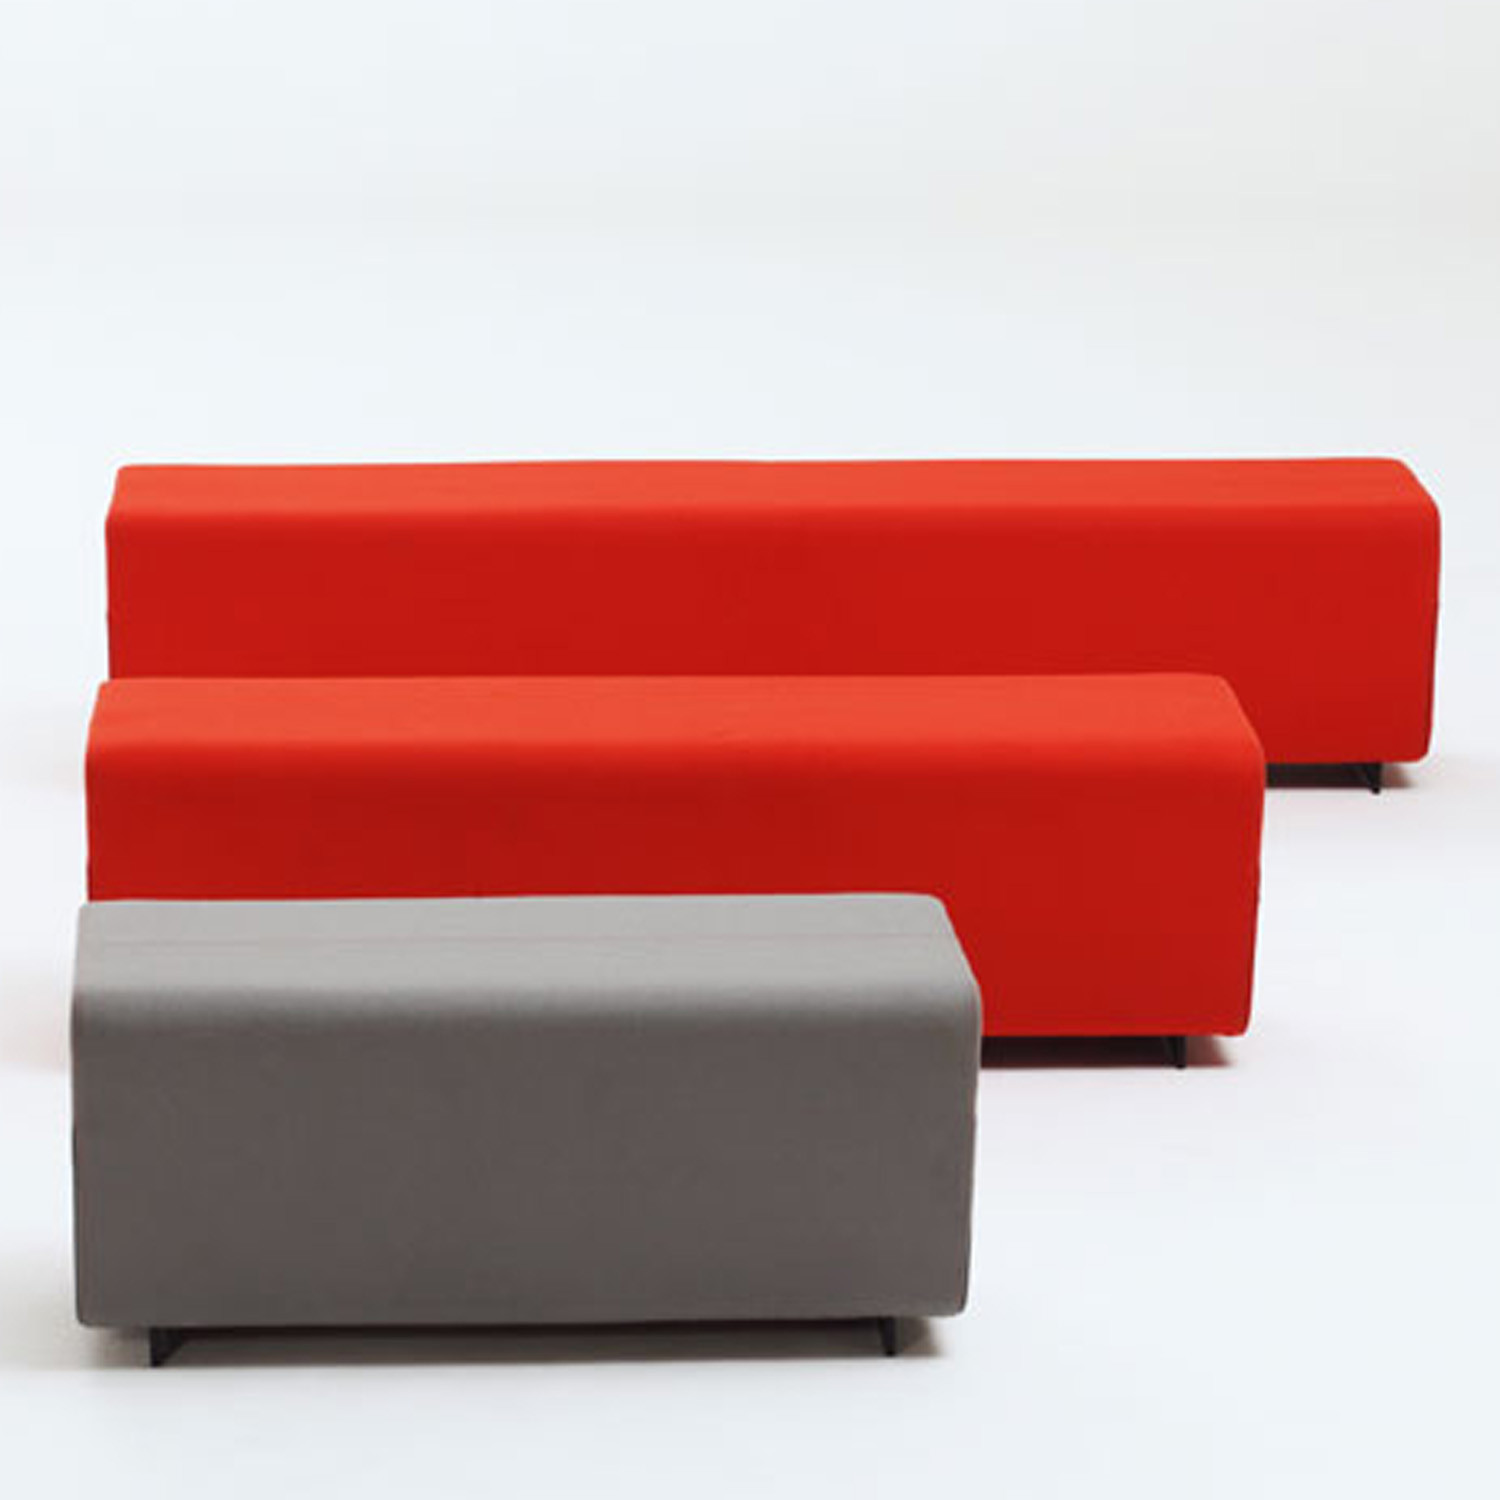 MIR Upholstered Benches